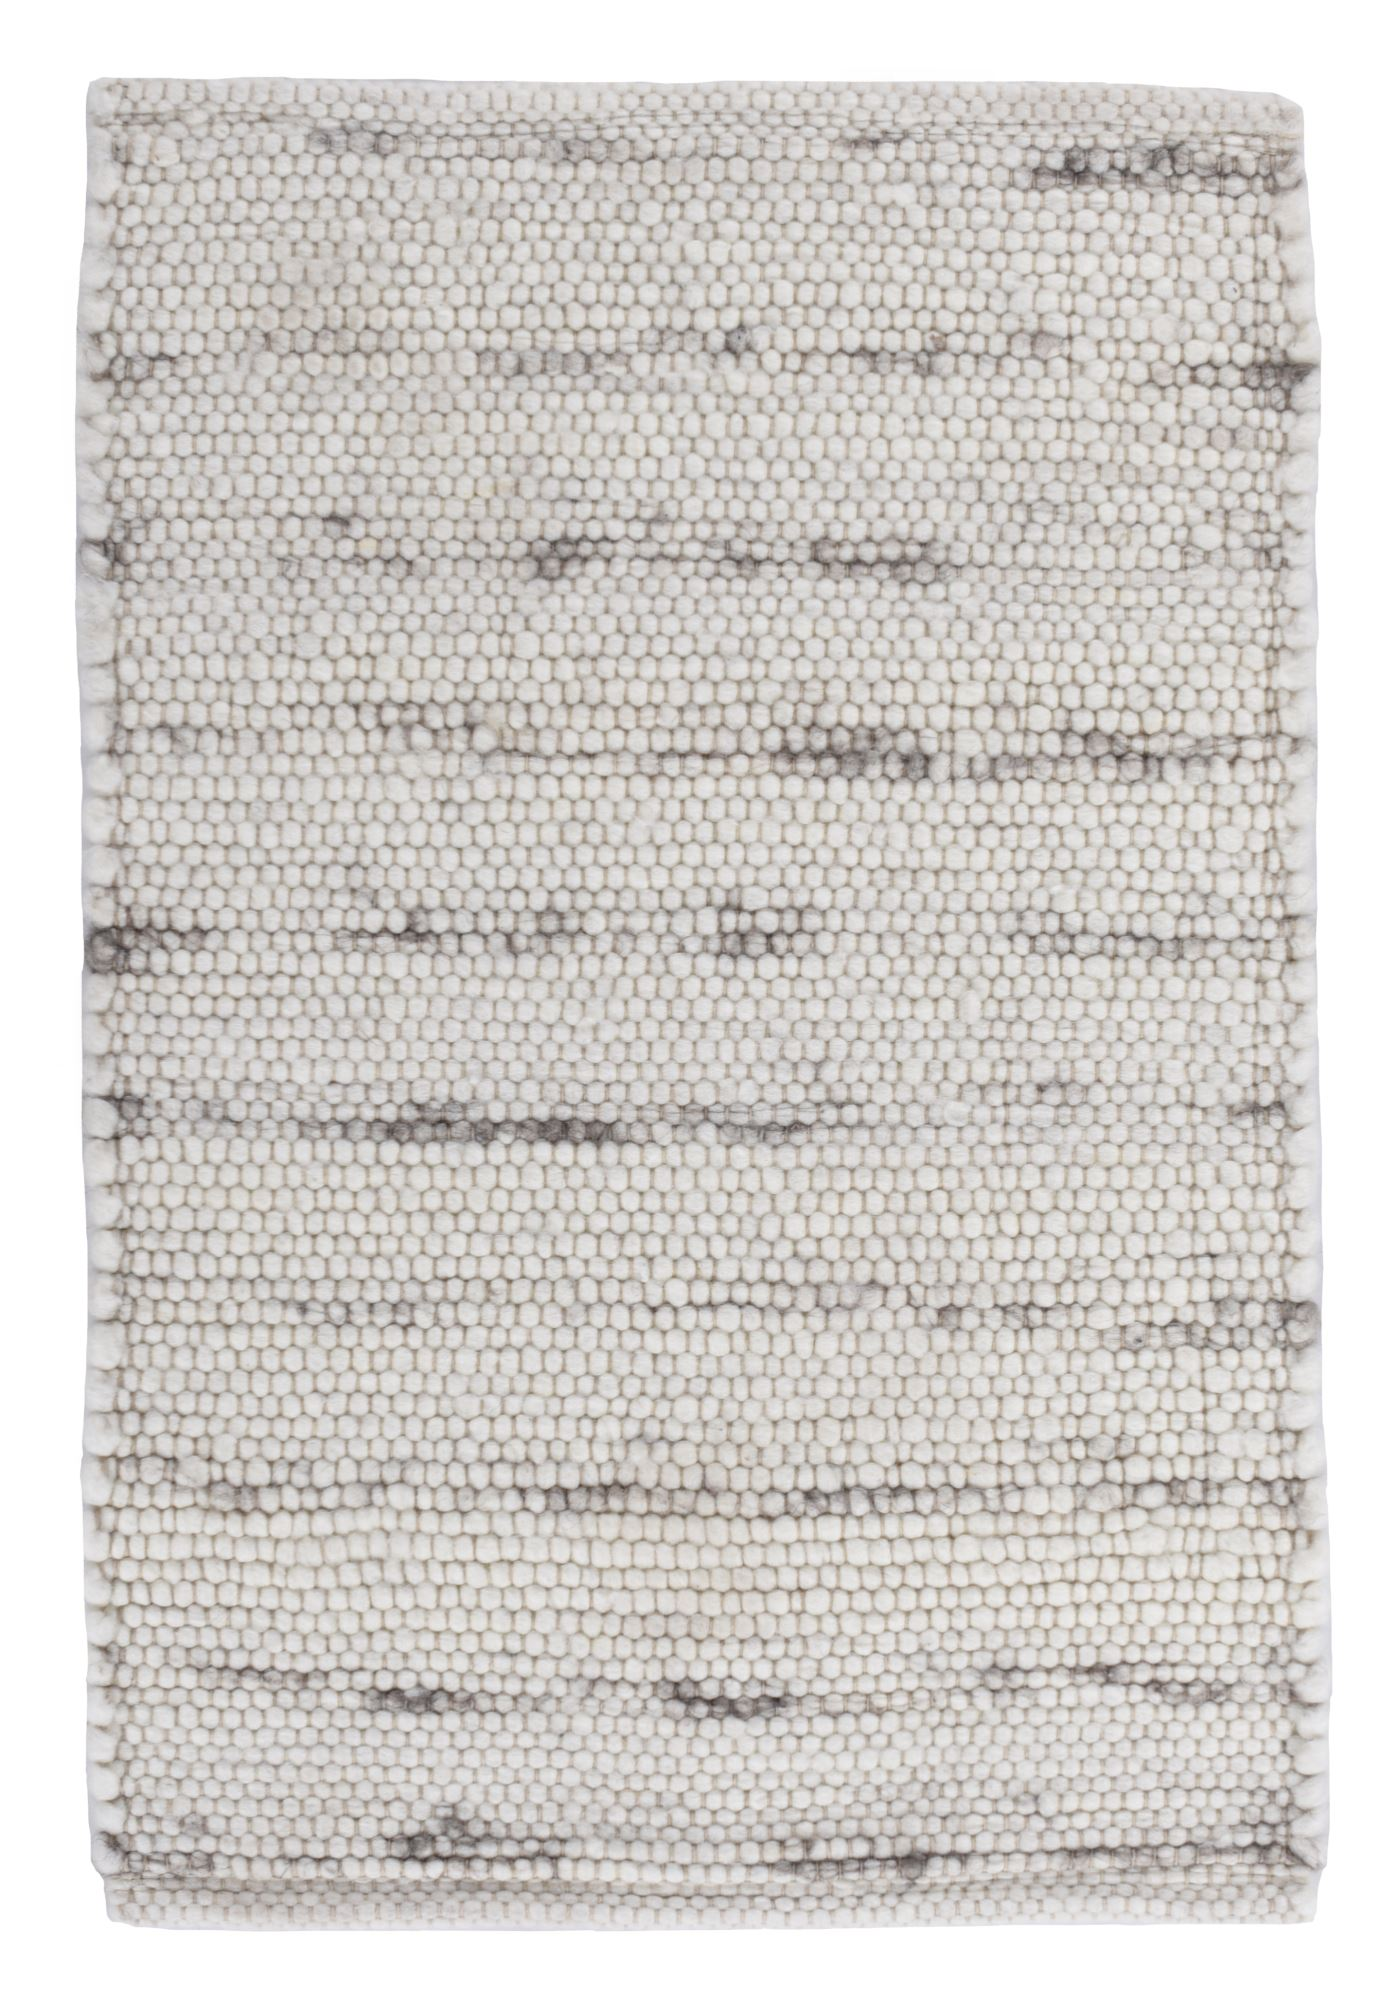 Tapis tissé à la main en laine naturelle natural grey 60x90